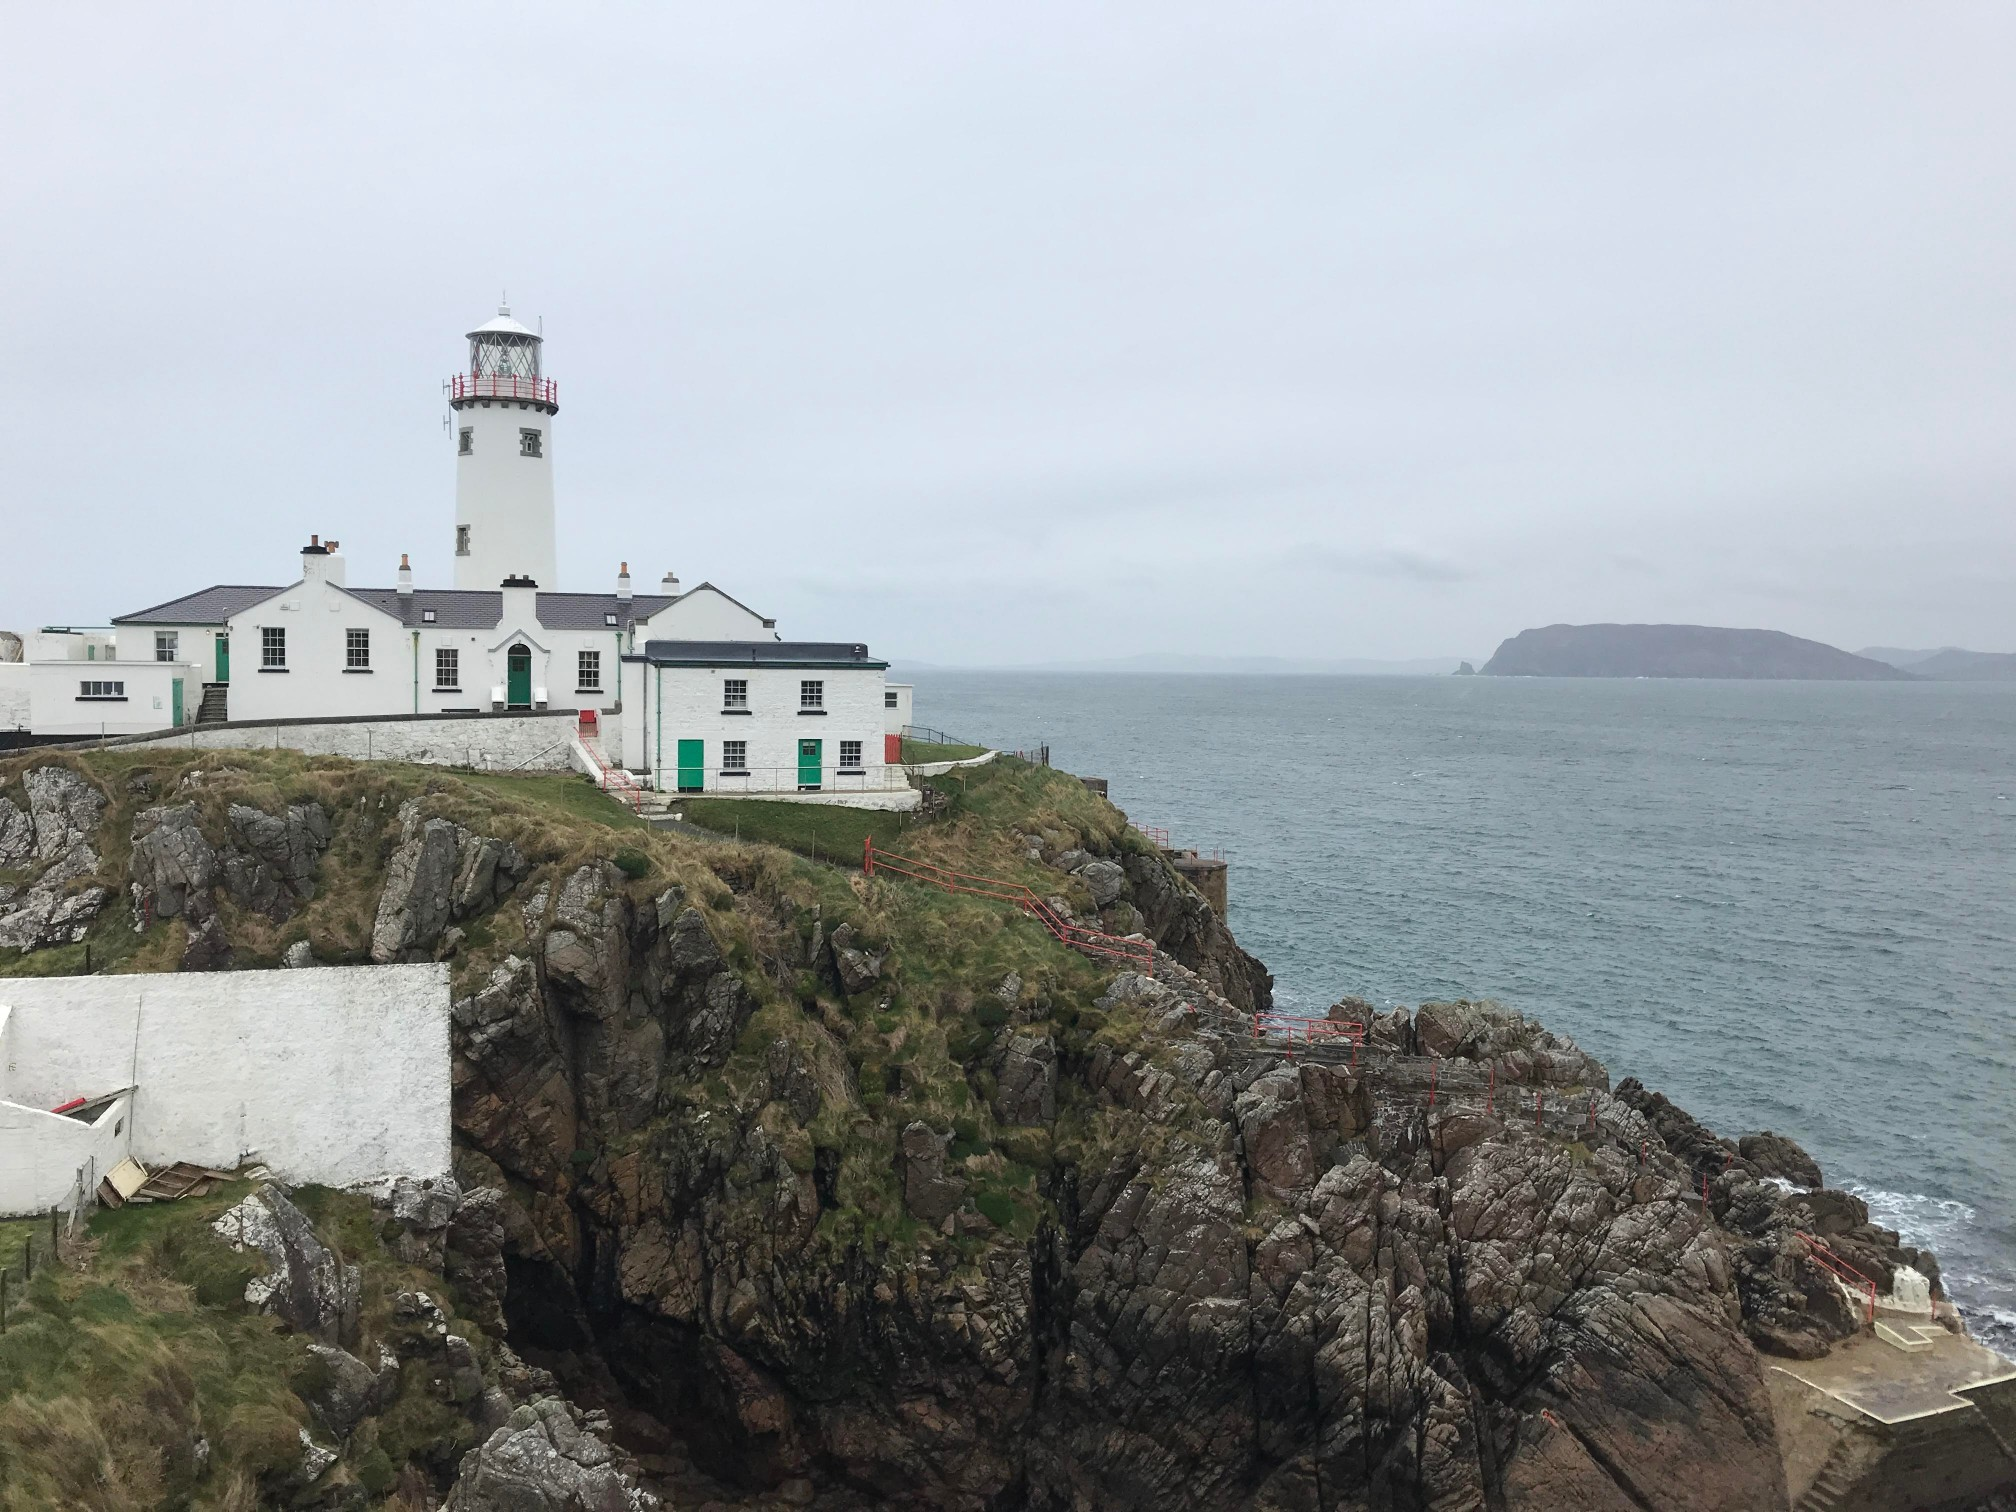 A blustery day at Fanad Lighthouse